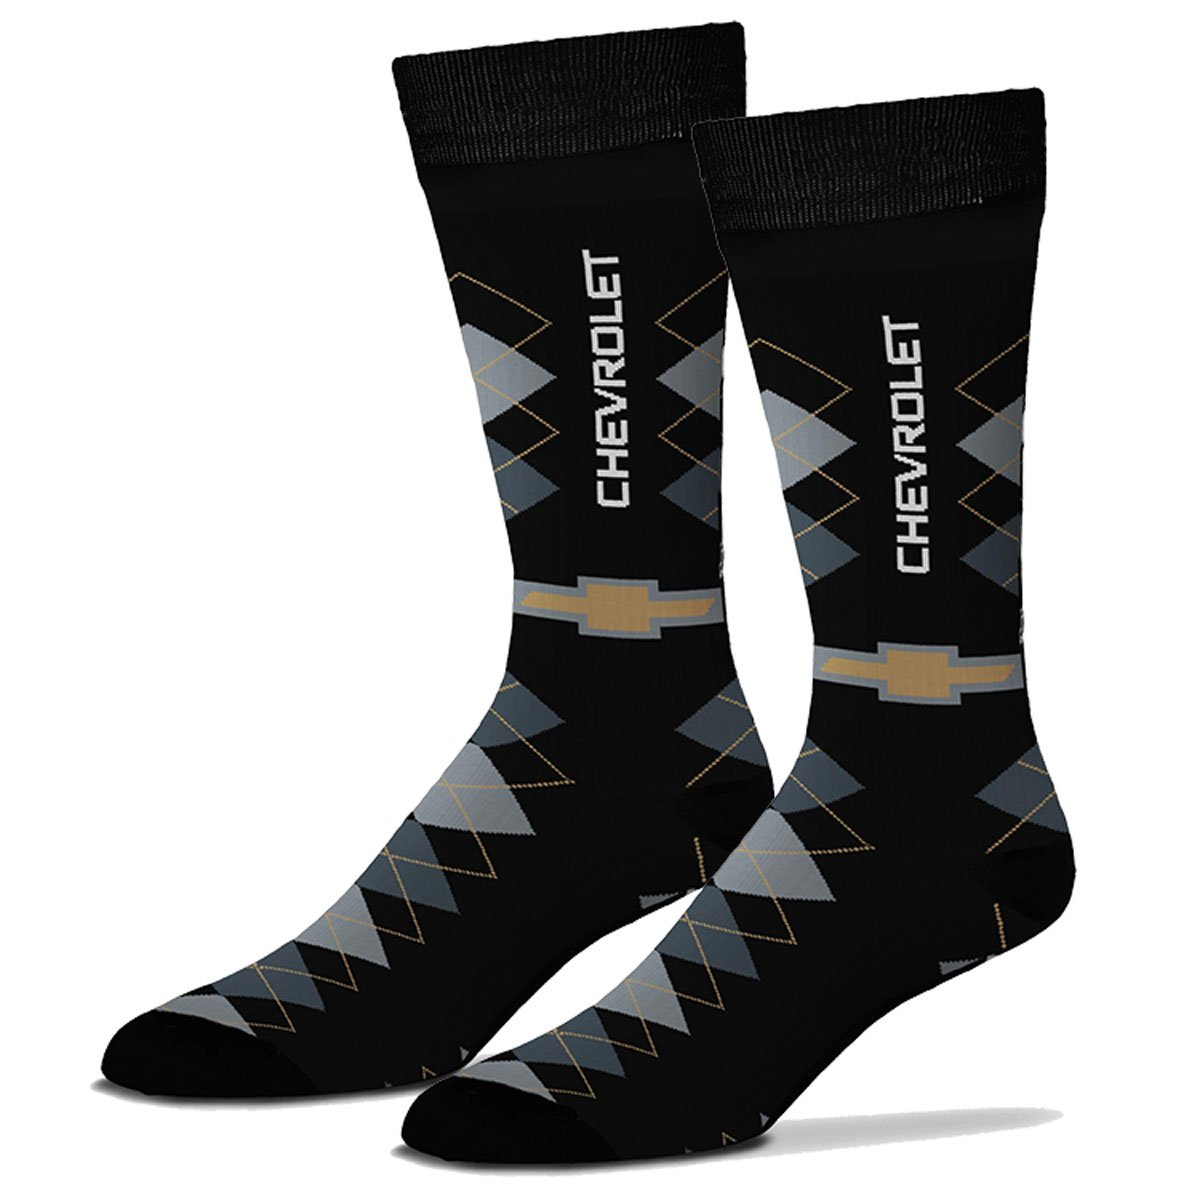 Gregs Automotive Chevrolet Chevy Bowtie Argyle Crew Socks - Bundle of 2 Items: One Pair of Socks and One Racing Decal Greg' s Automotive